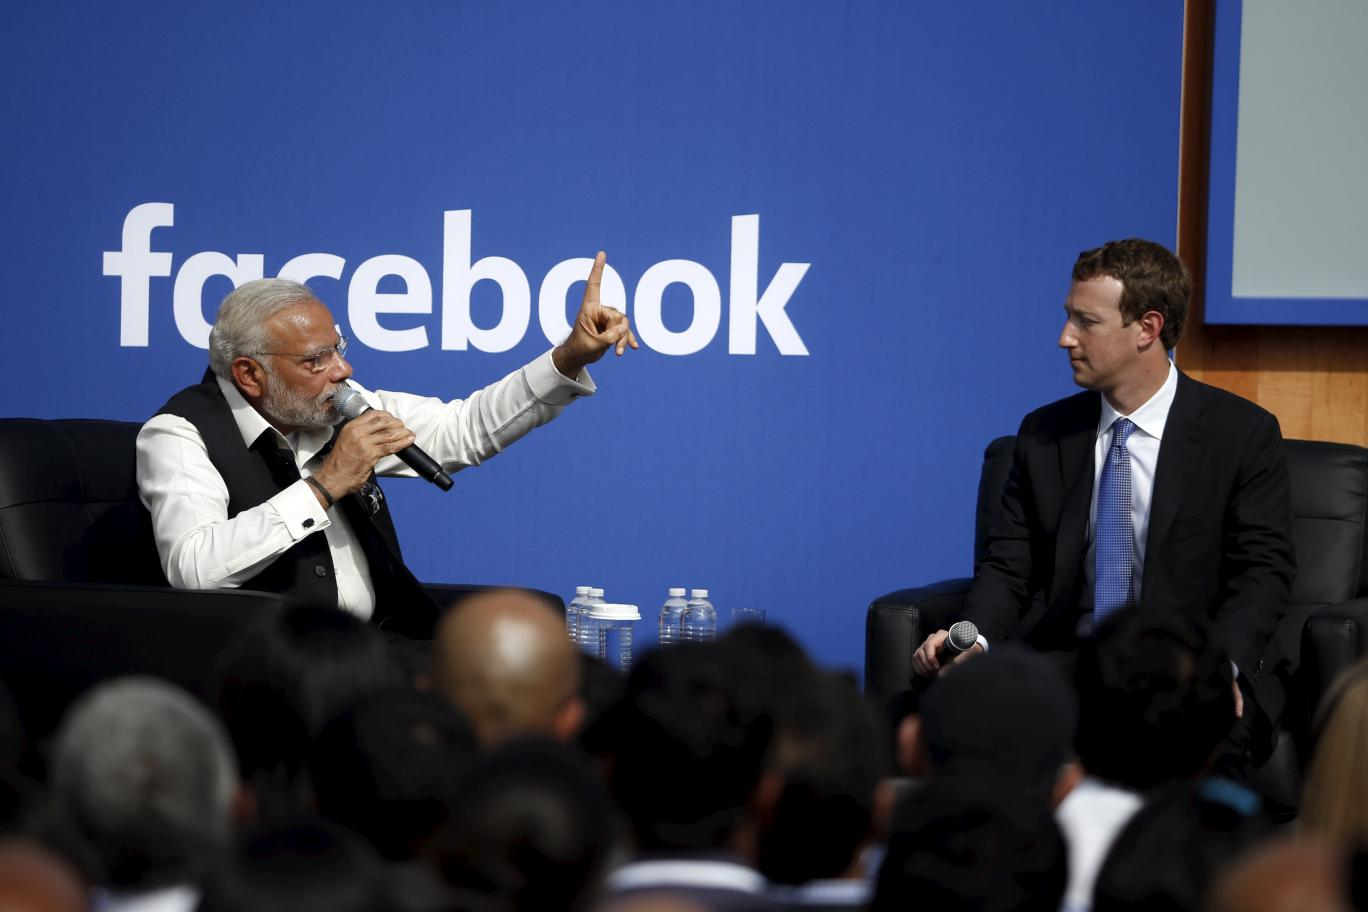 Cong accuses BJP of controlling Facebook; saffron party hits back